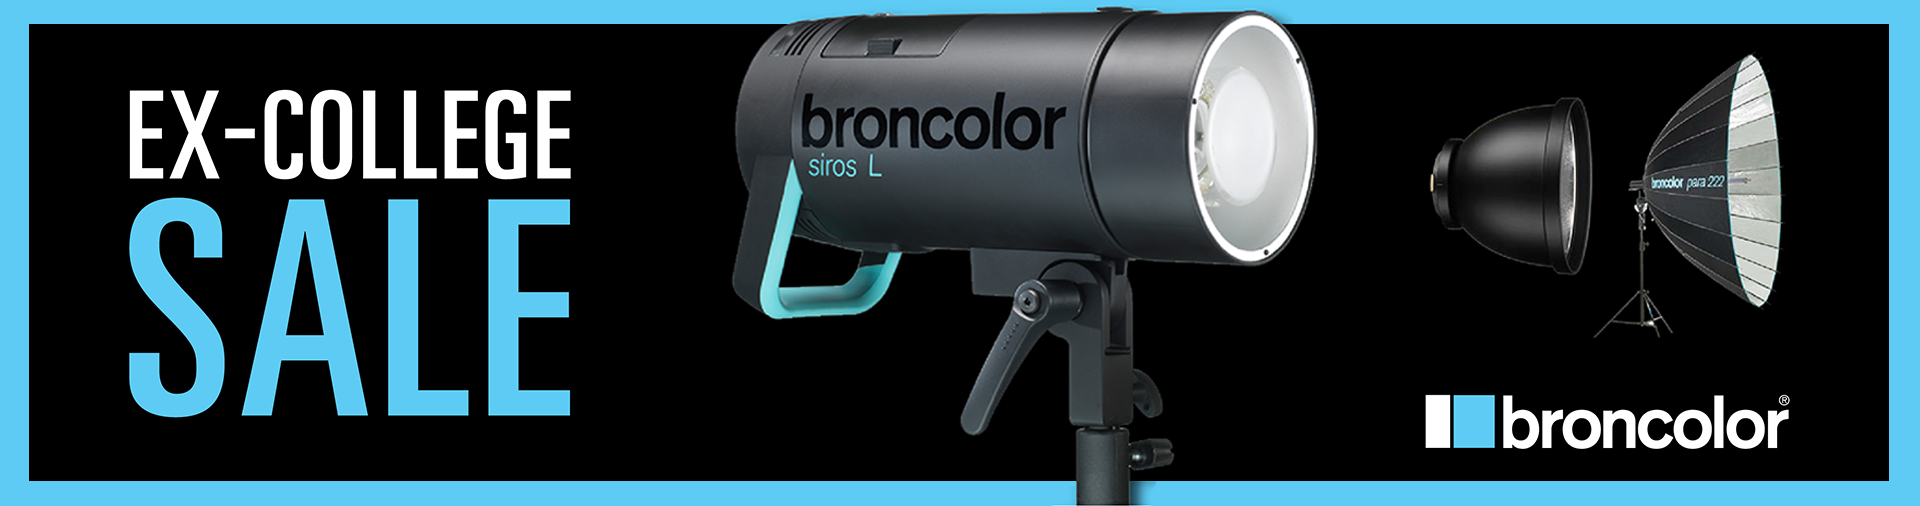 broncolor-ex-college-stock-sale-2019